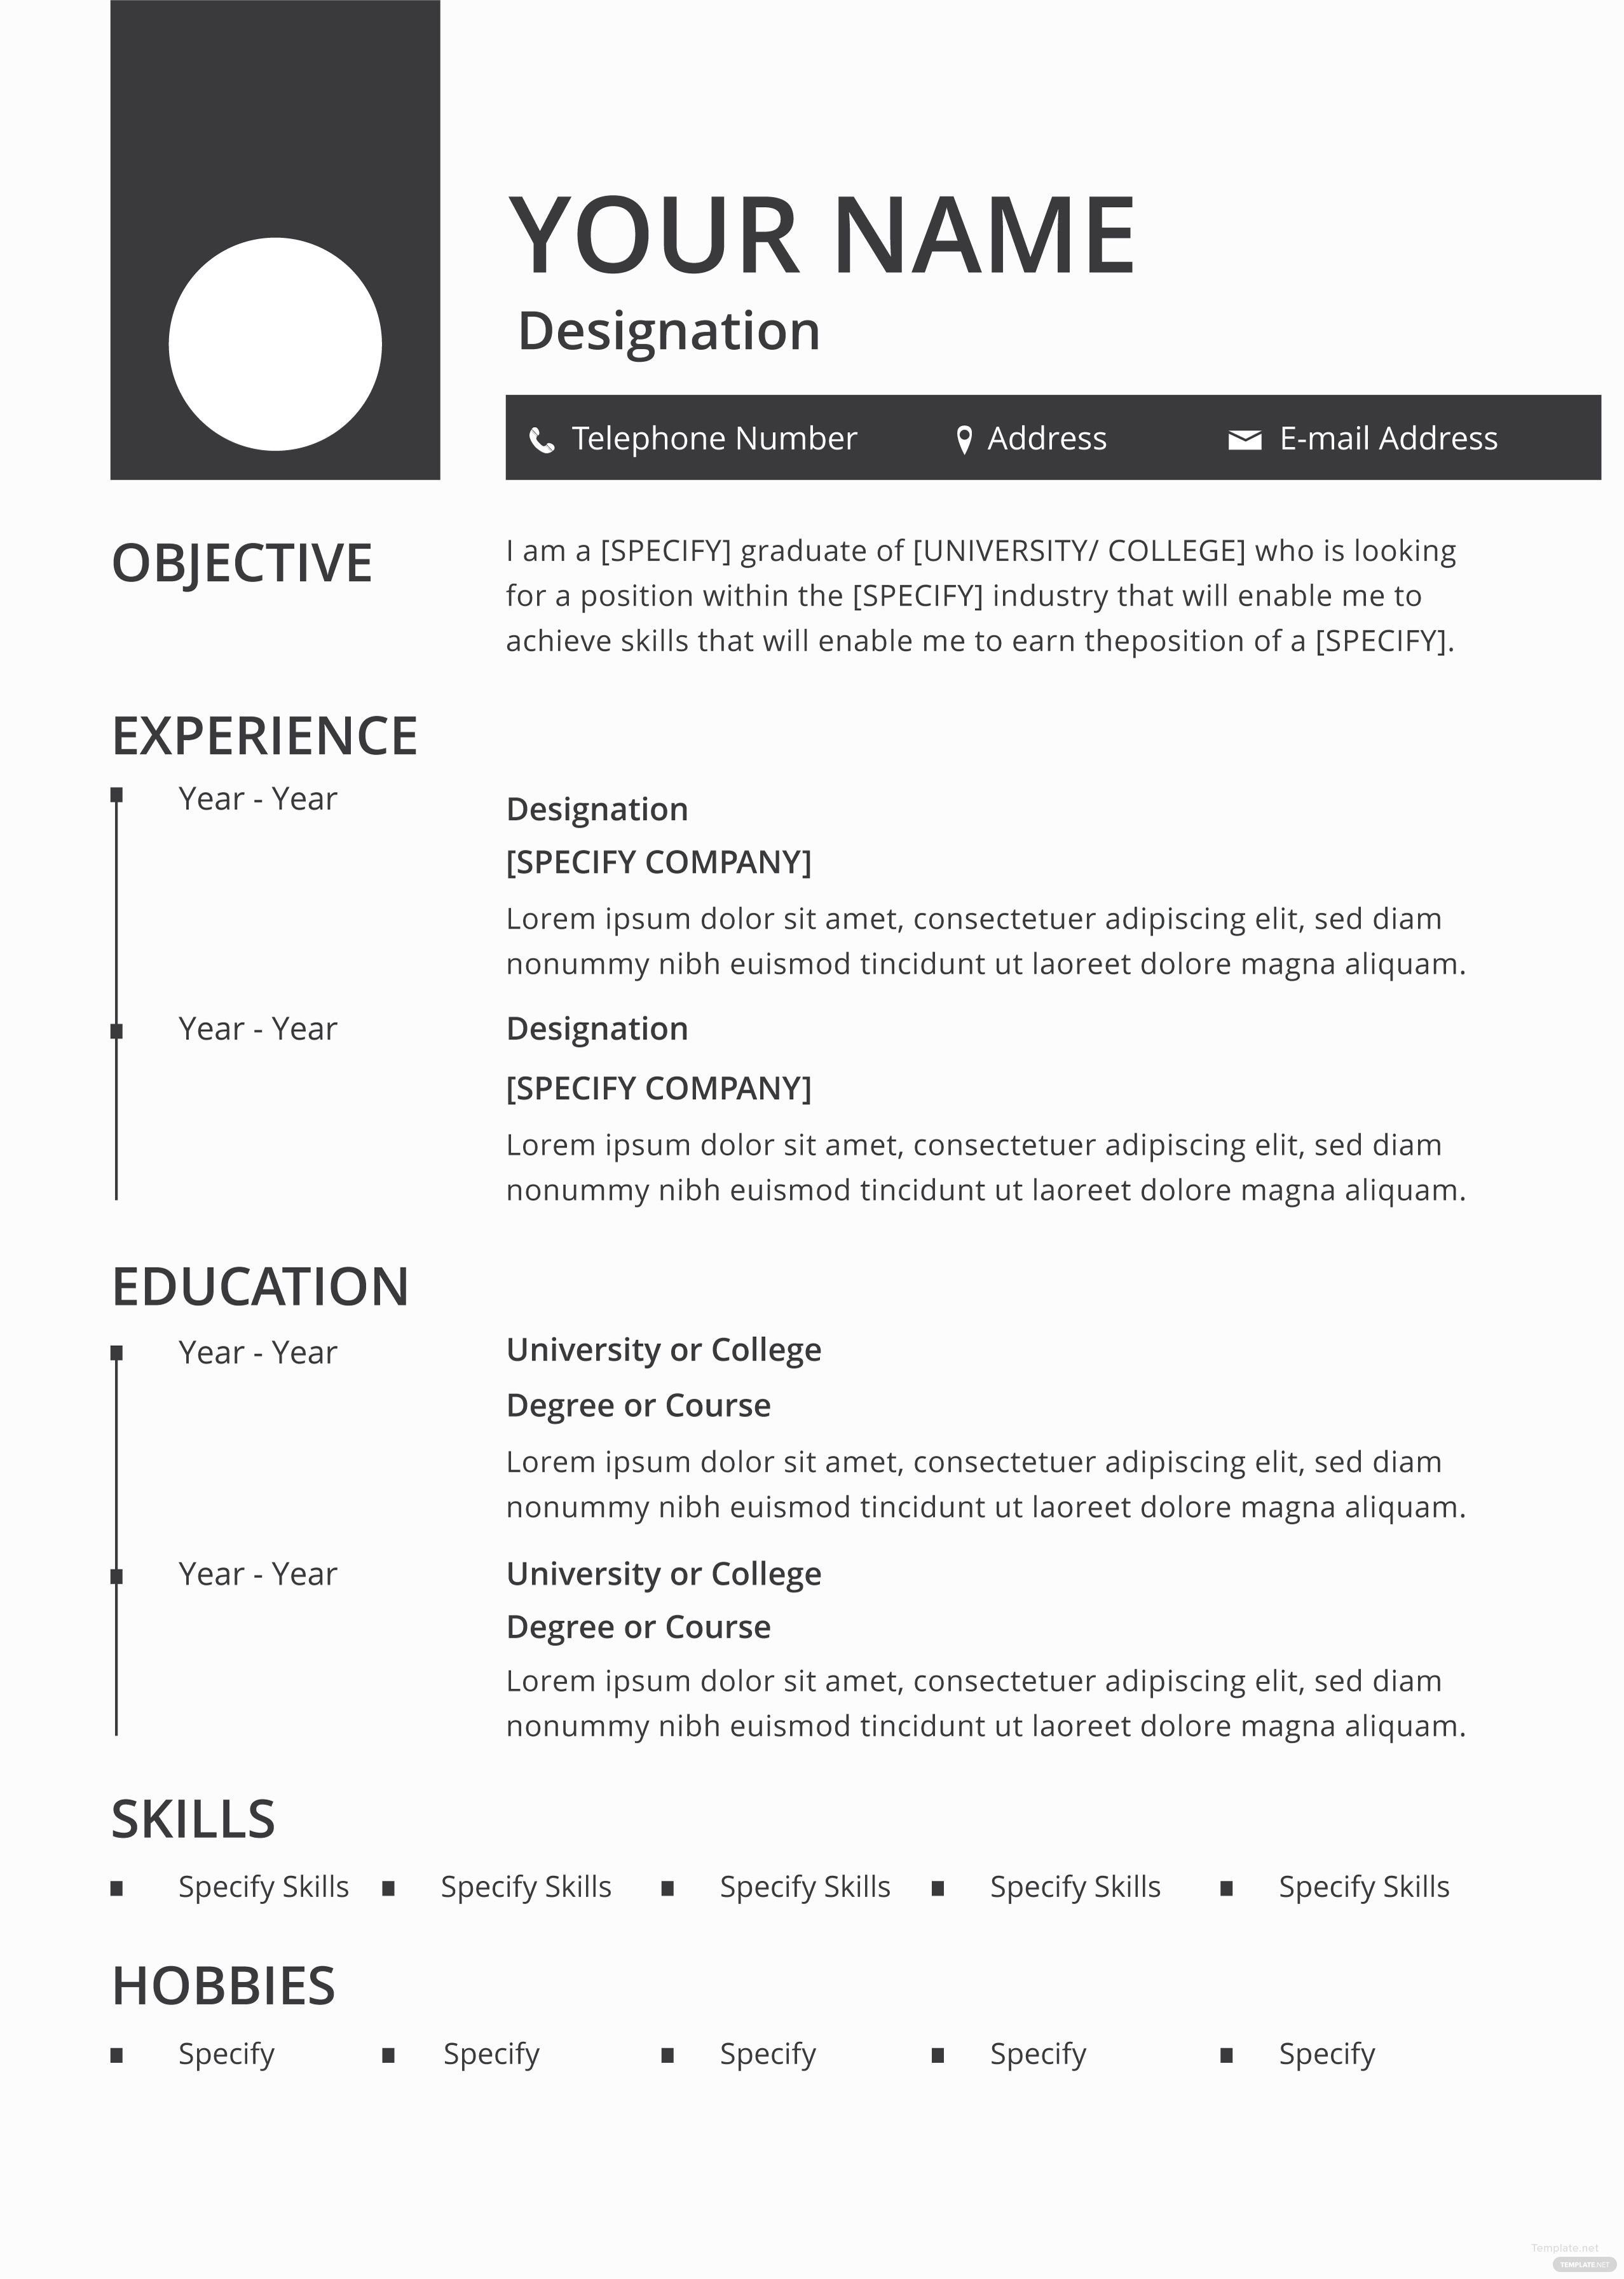 Free Blank Resume And Cv Template In Adobe Photoshop Microsoft